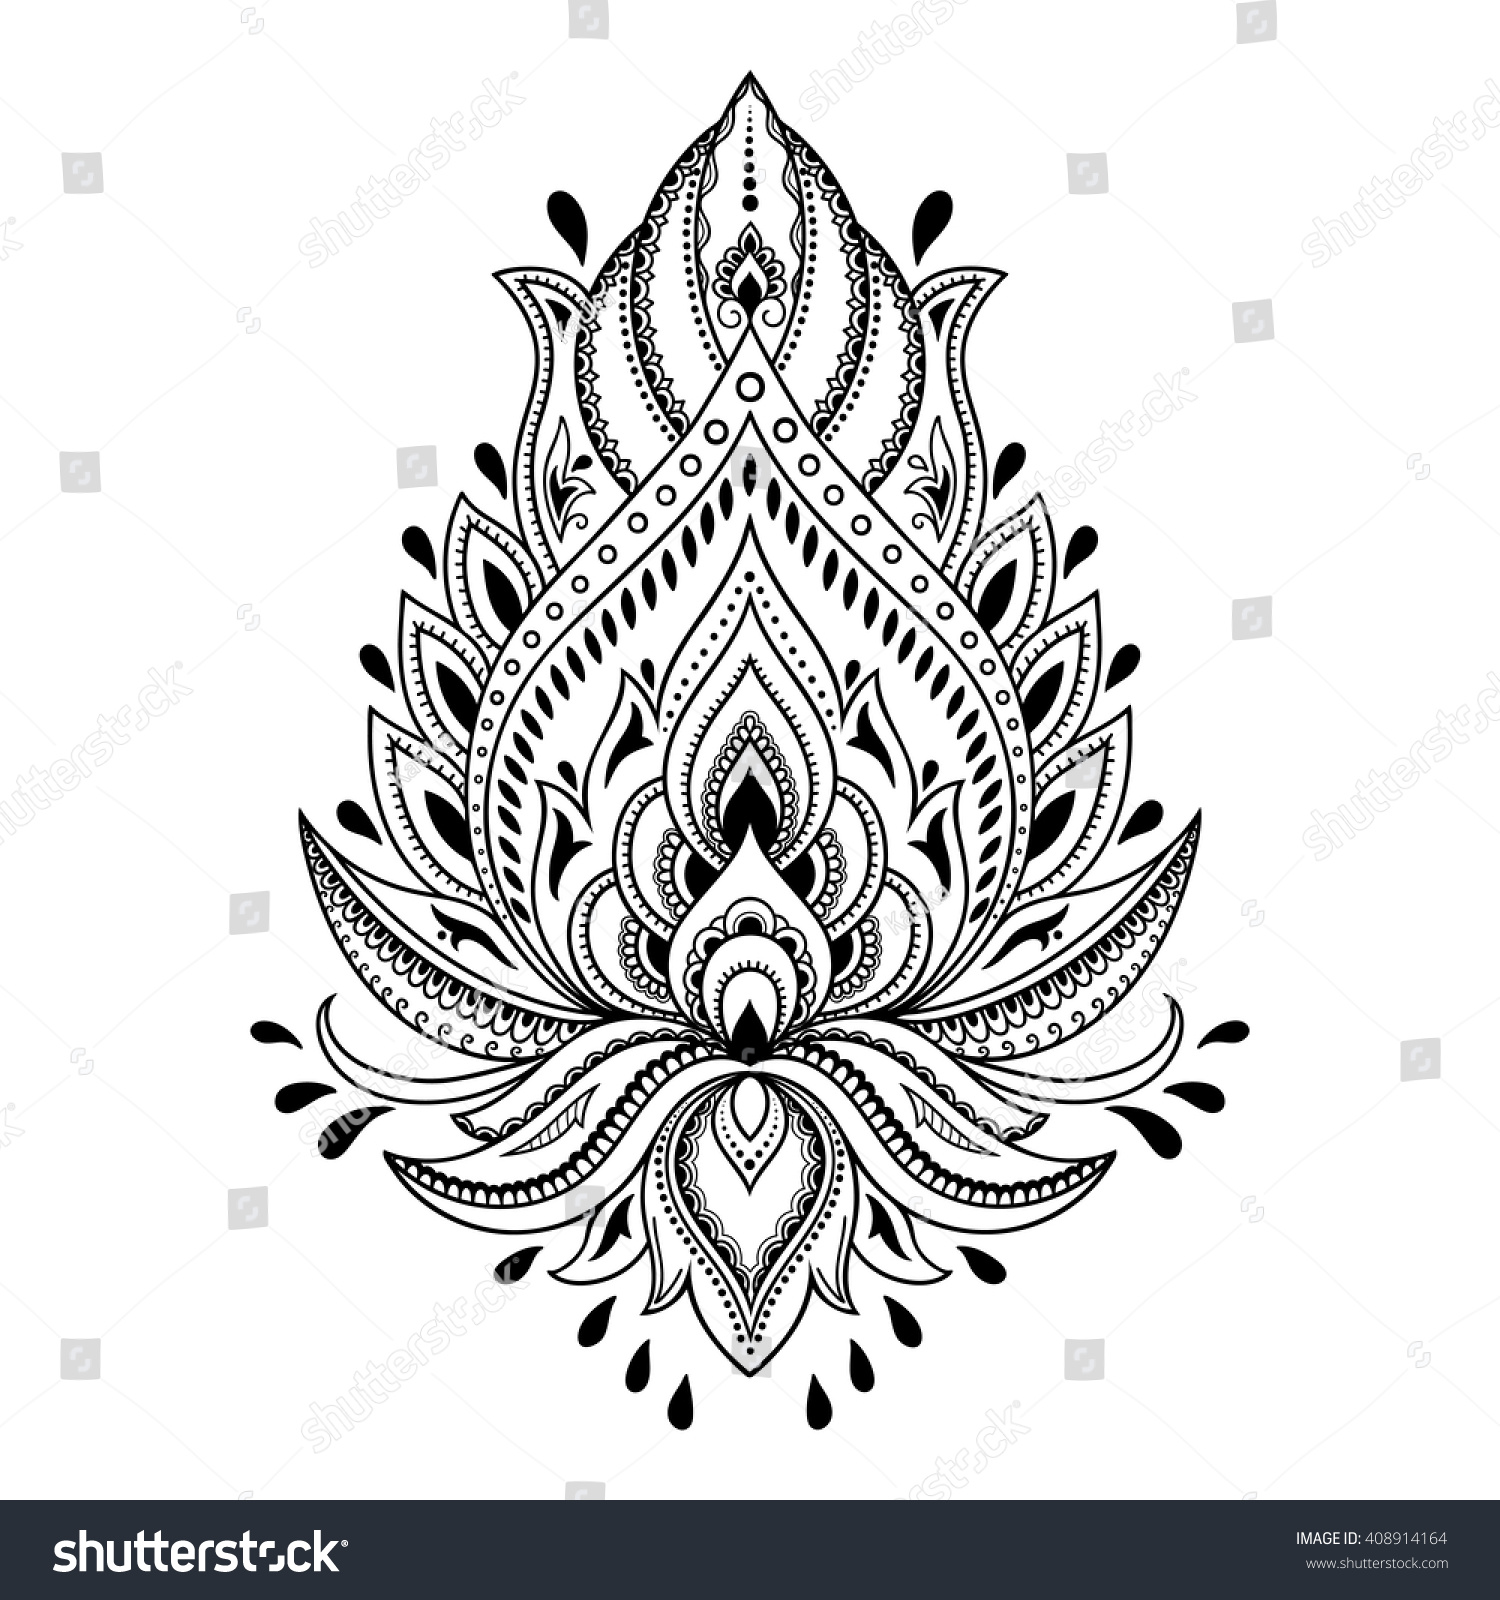 Henna tattoo flower template in Indian style Ethnic floral paisley Lotus Mehndi style